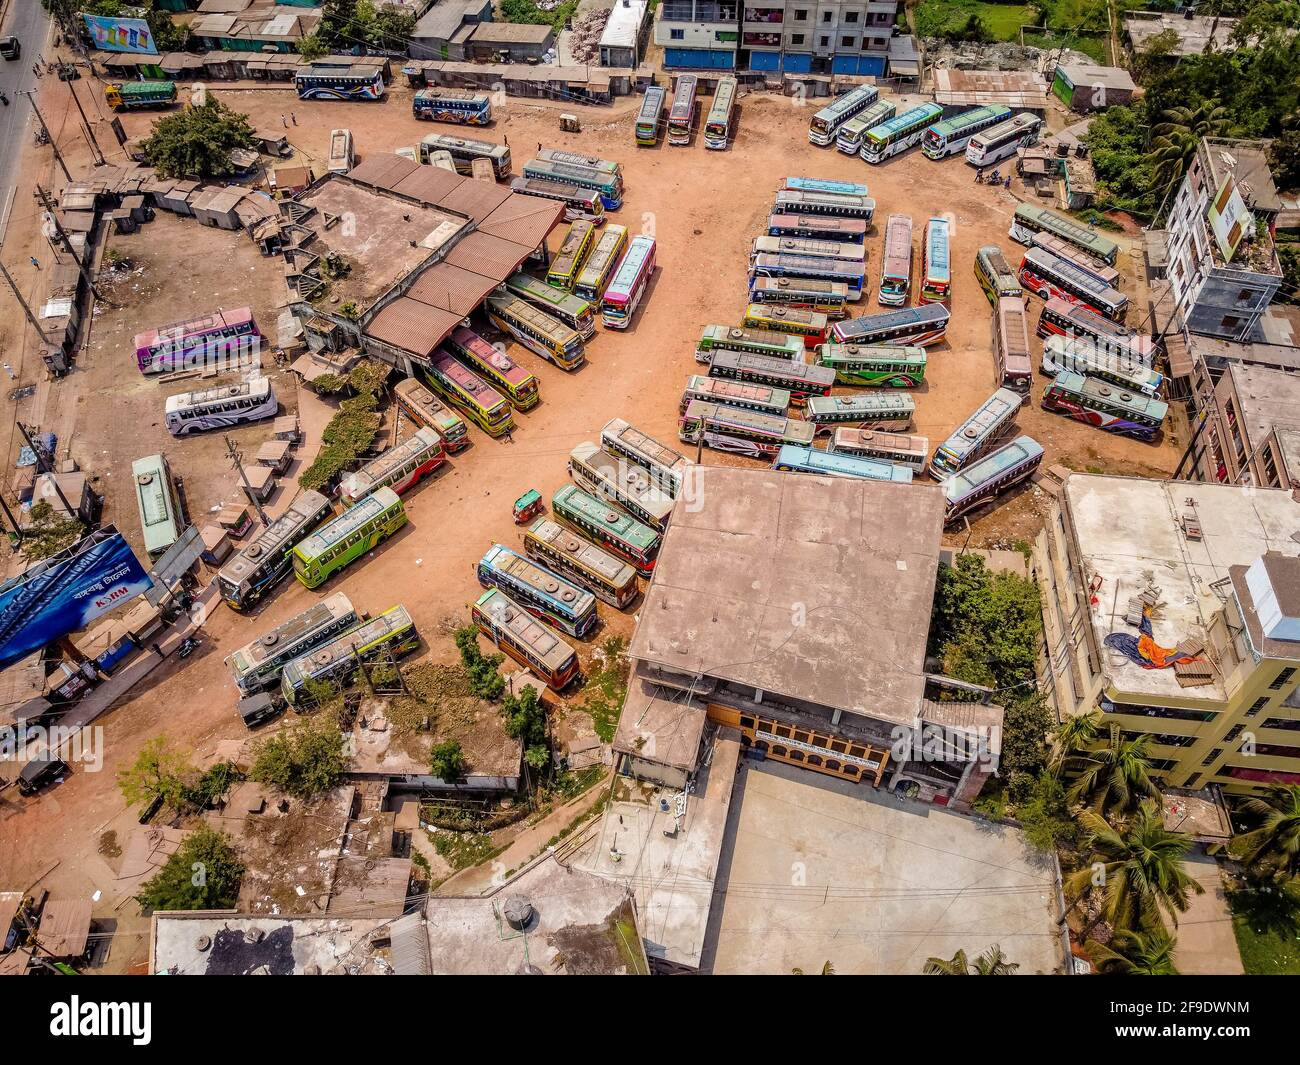 Barisal, Bangladesh. 17th Apr, 2021. An aerial view of Rupatoli Bus terminal in Barisal as buses remain parked during a strict lockdown enforced by the Bangladesh authorities to combat the spread of the Covid-19 coronavirus in Barisal. (Photo by Mustasinur Rahman Alvi/Pacific Press) Credit: Pacific Press Media Production Corp./Alamy Live News Stock Photo